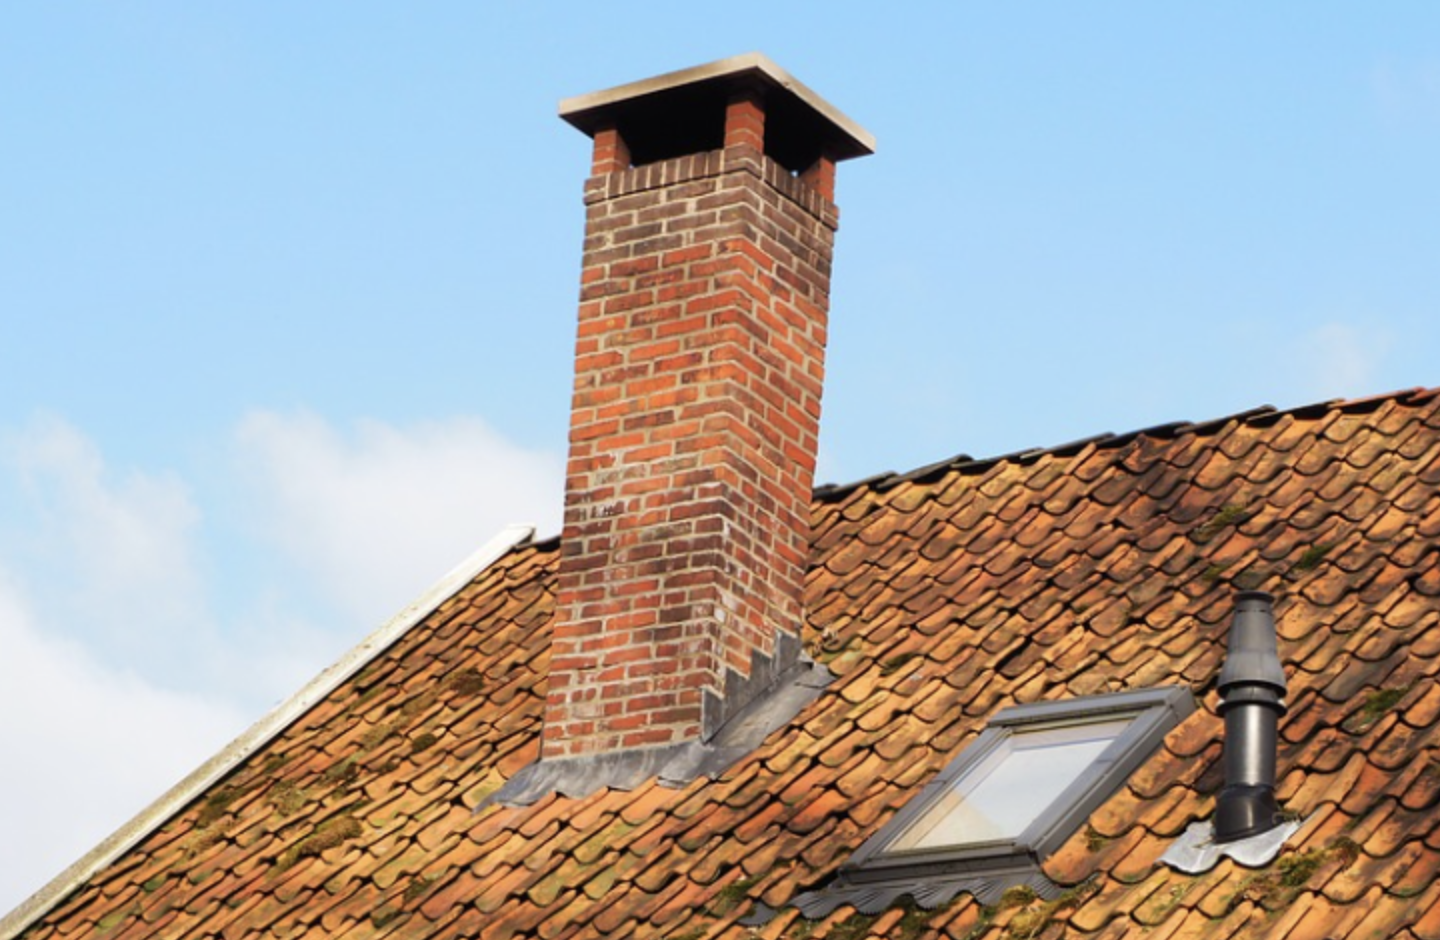 Chimney Repairs Croydon - Roofing Contractors Croydon - Gecko Roofing